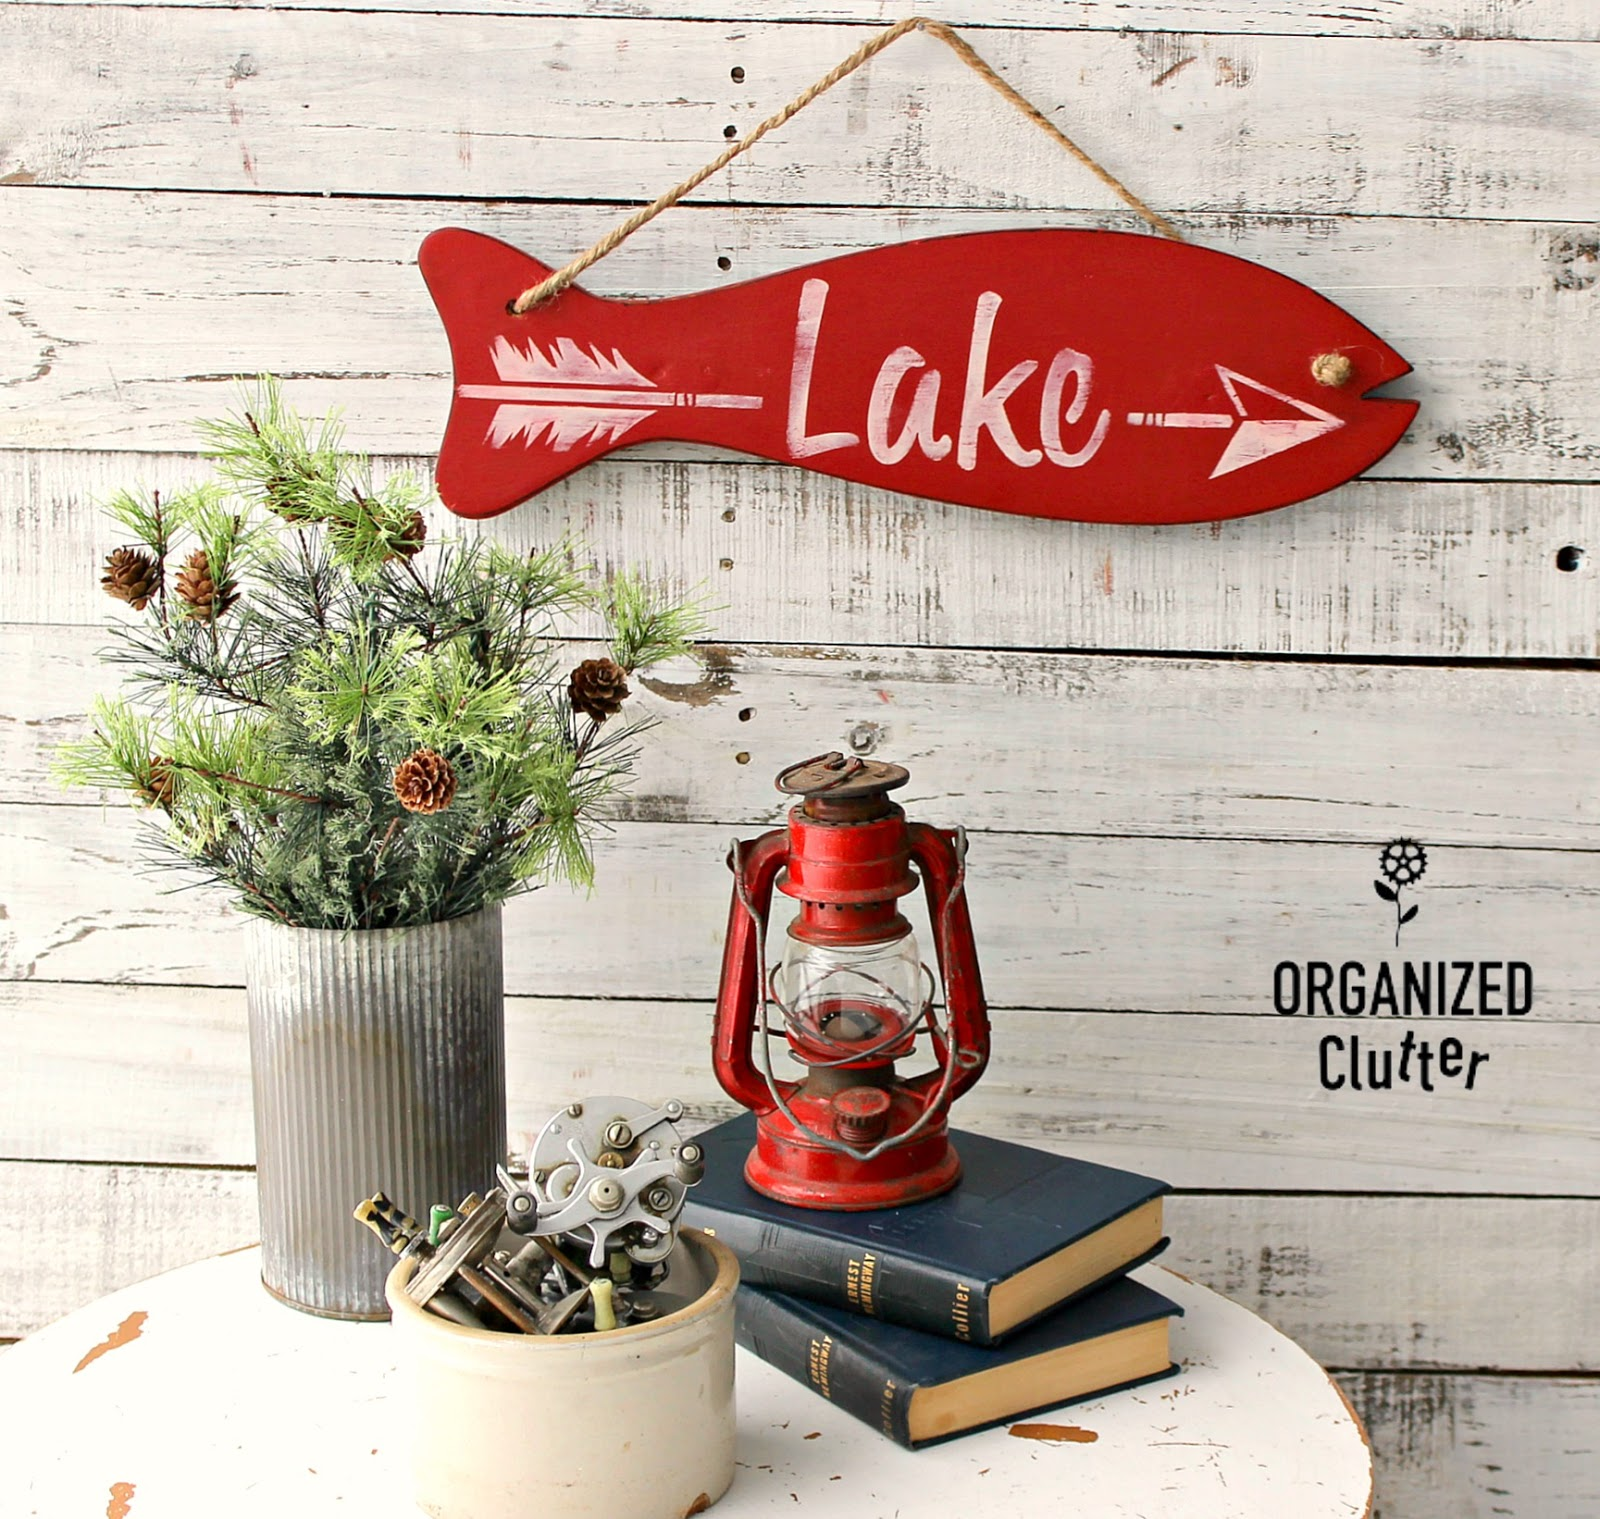 Fishing rod holder Lake sign by Organized Clutter, featured on DIY Salvaged Junk 511 on Funky Junk Interiors.